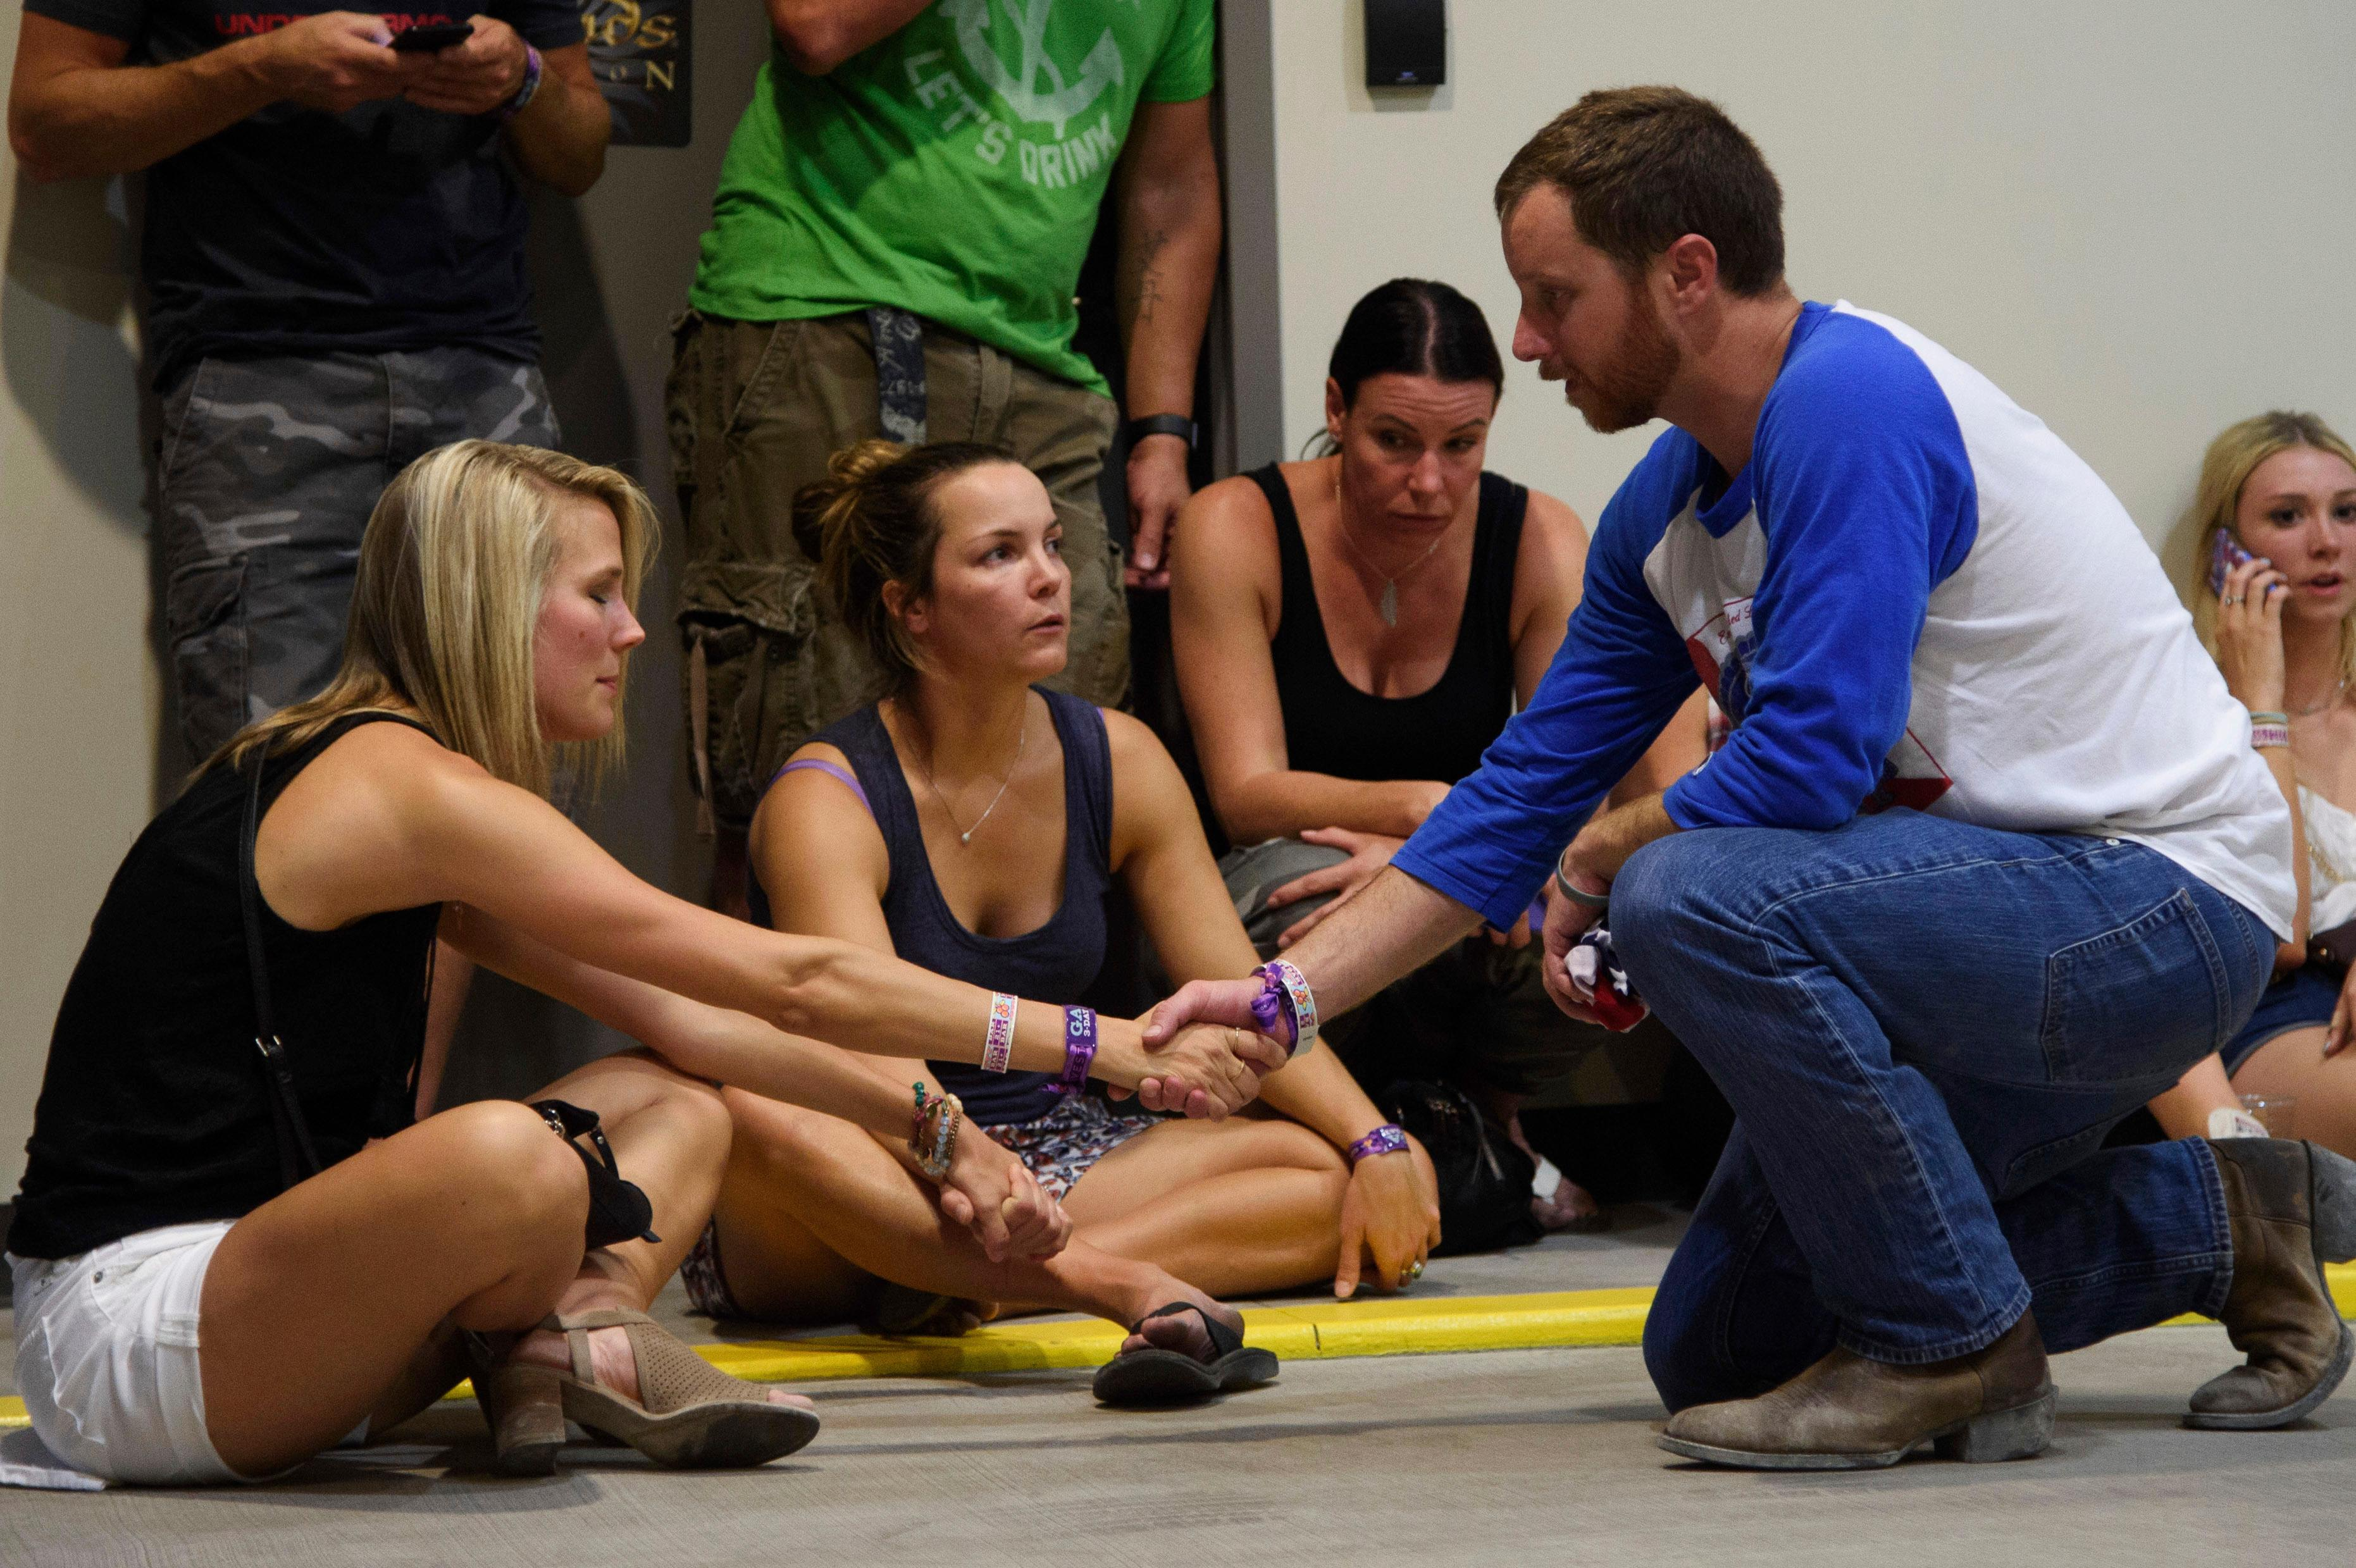 People hold hands in prayer while hiding inside the Sands Corporation plane hangar after a mass shooting in which dozens were killed at the Route 91 Harvest Festival on Sunday, Oct. 1, 2017, in Las Vegas. (Al Powers/Invision/AP)